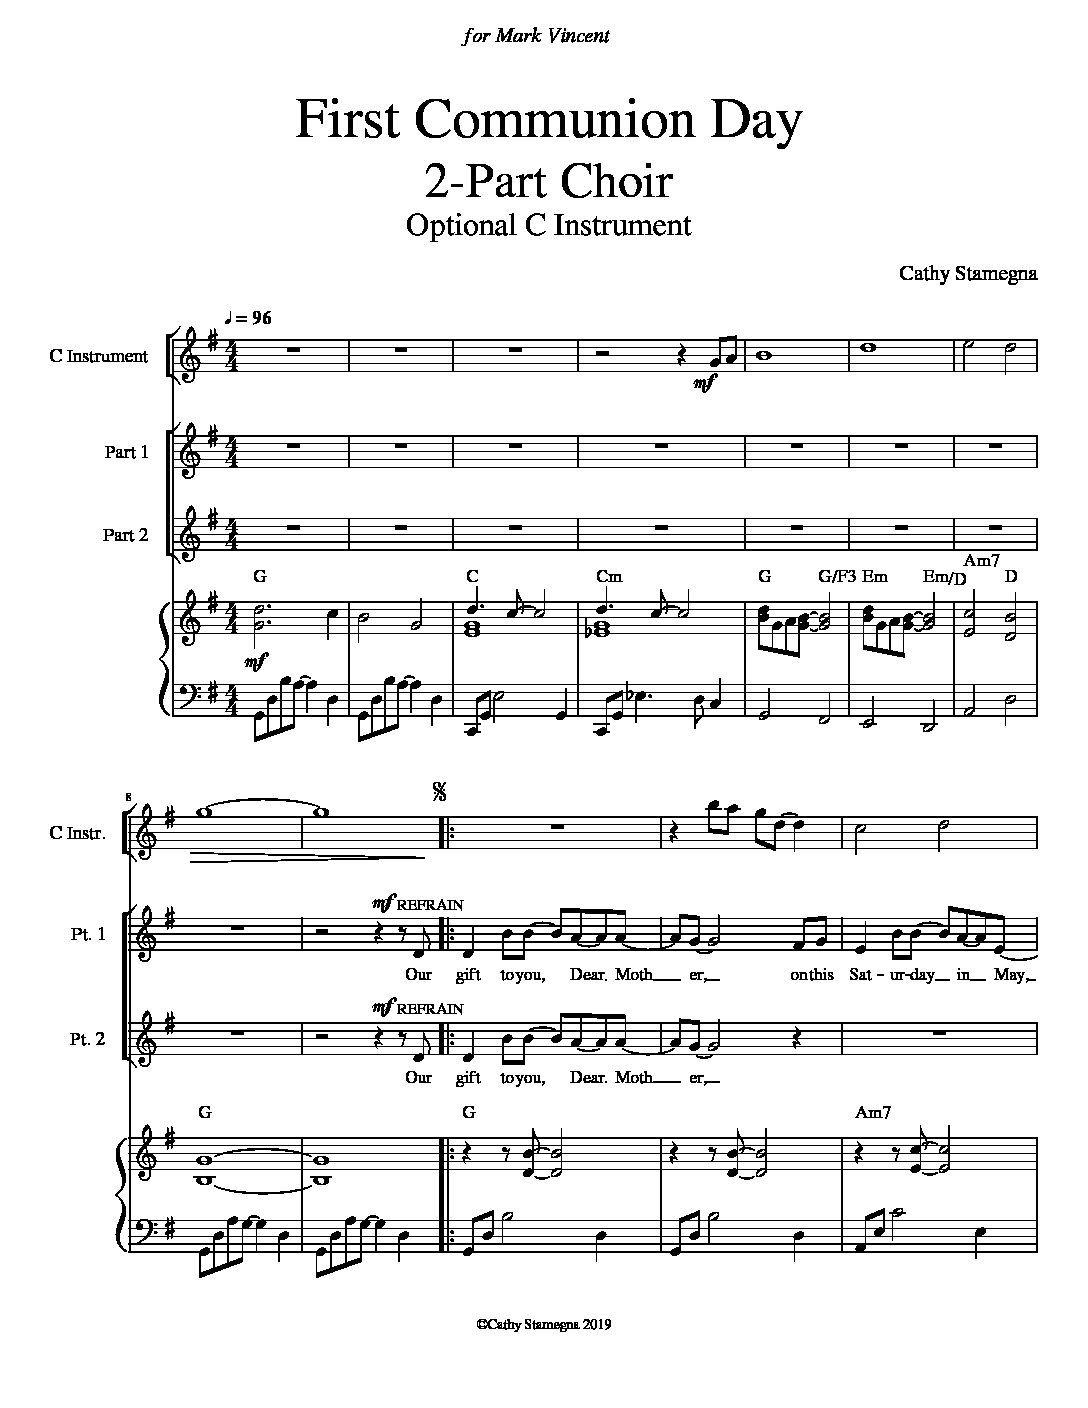 First Communion Day (Chords, Piano Acc., Optional C Instrument) for 2-Part or Unison Choir